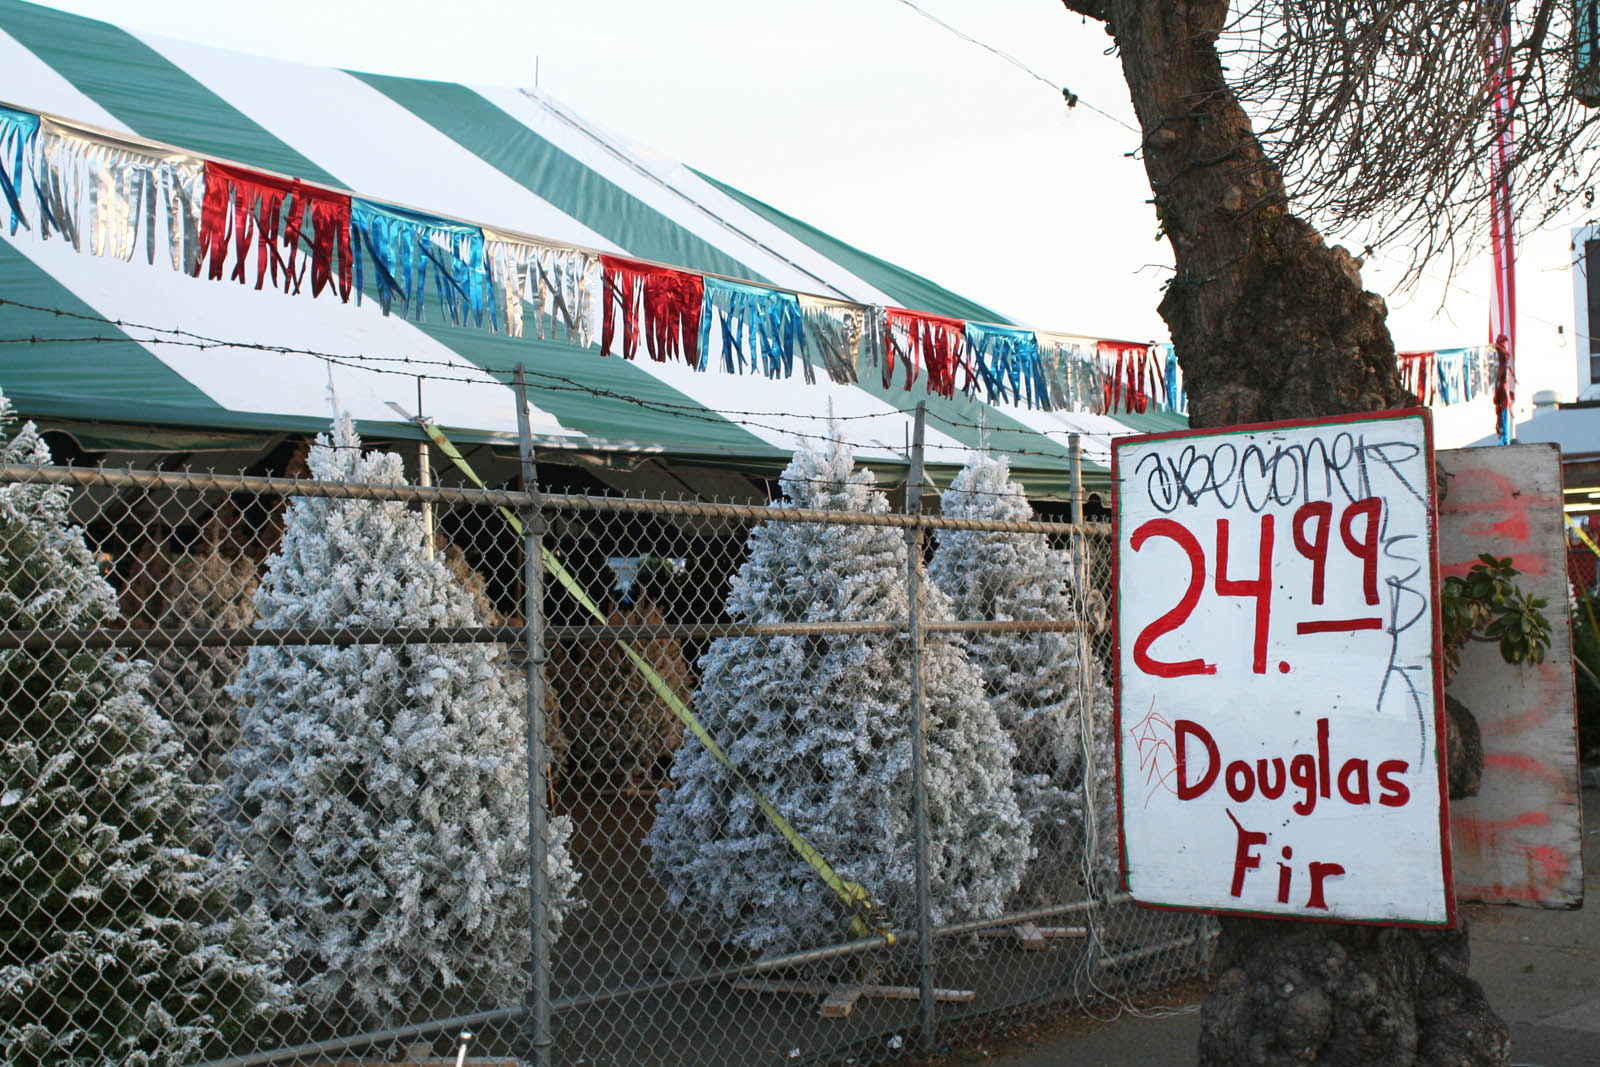 Bab's Christmas Trees has been drawing customers to 23rd Street since 1981.